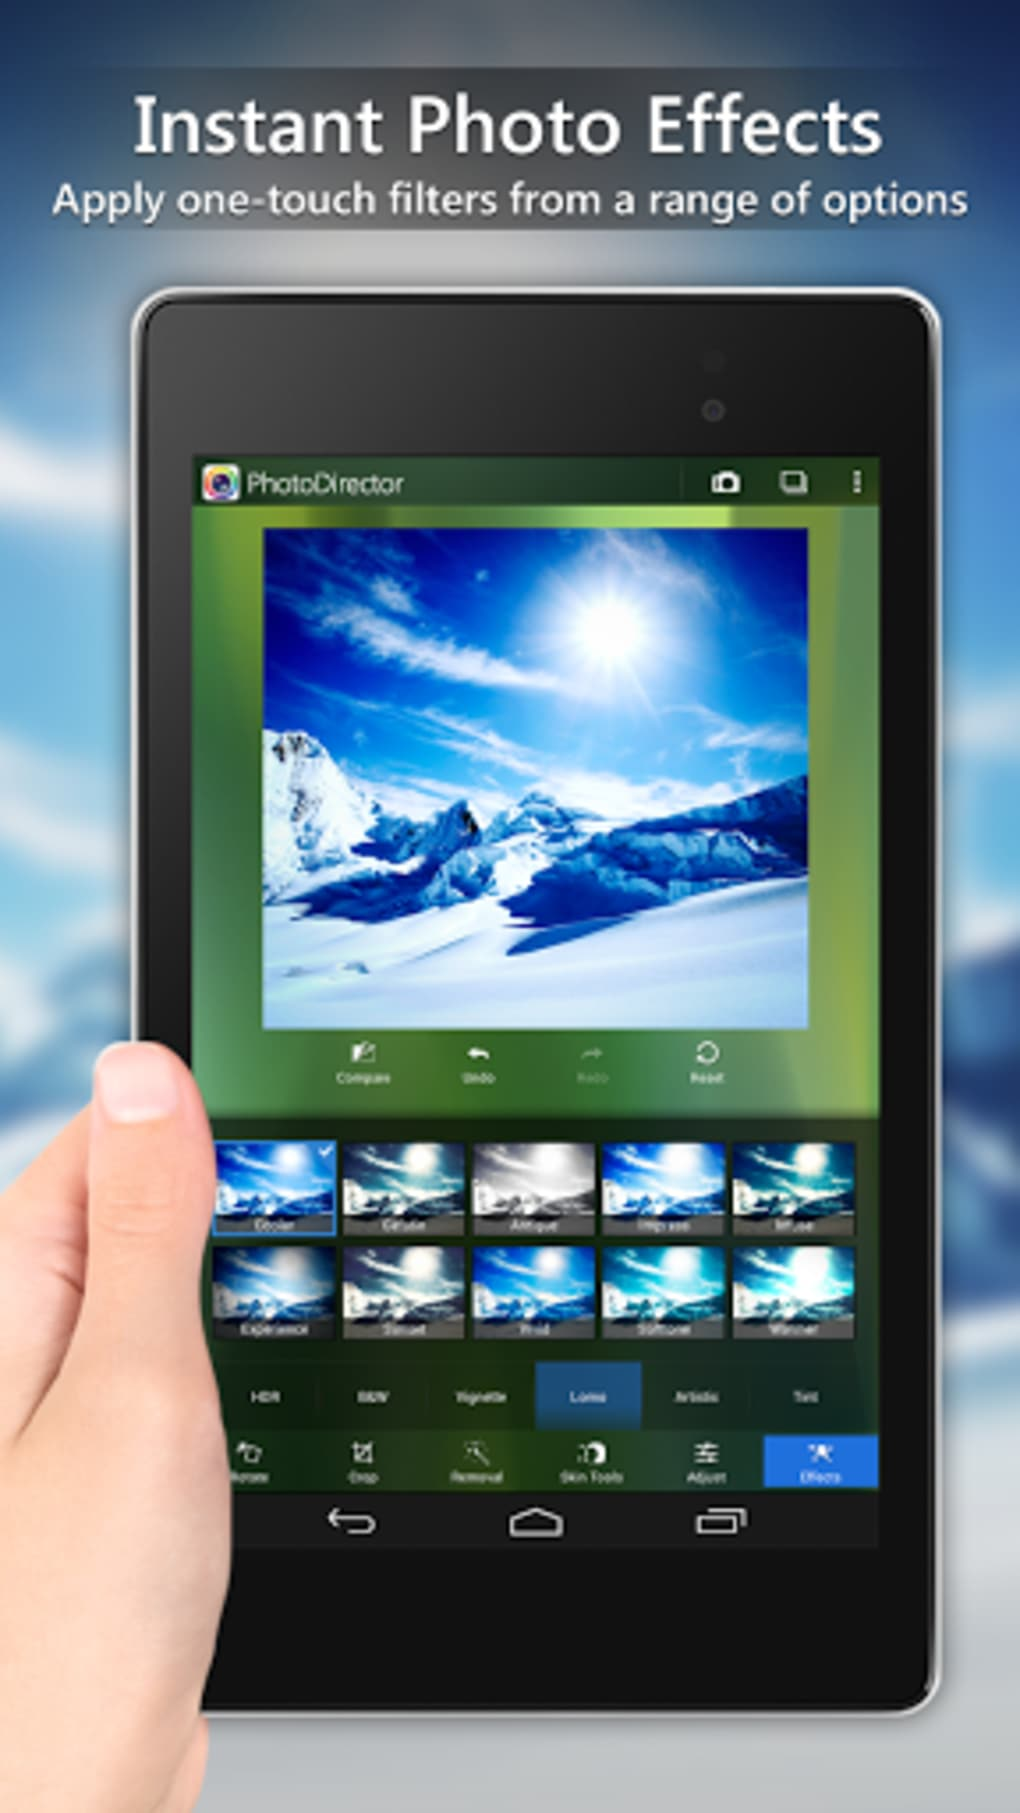 PhotoDirector Photo Editor App for Android - Download